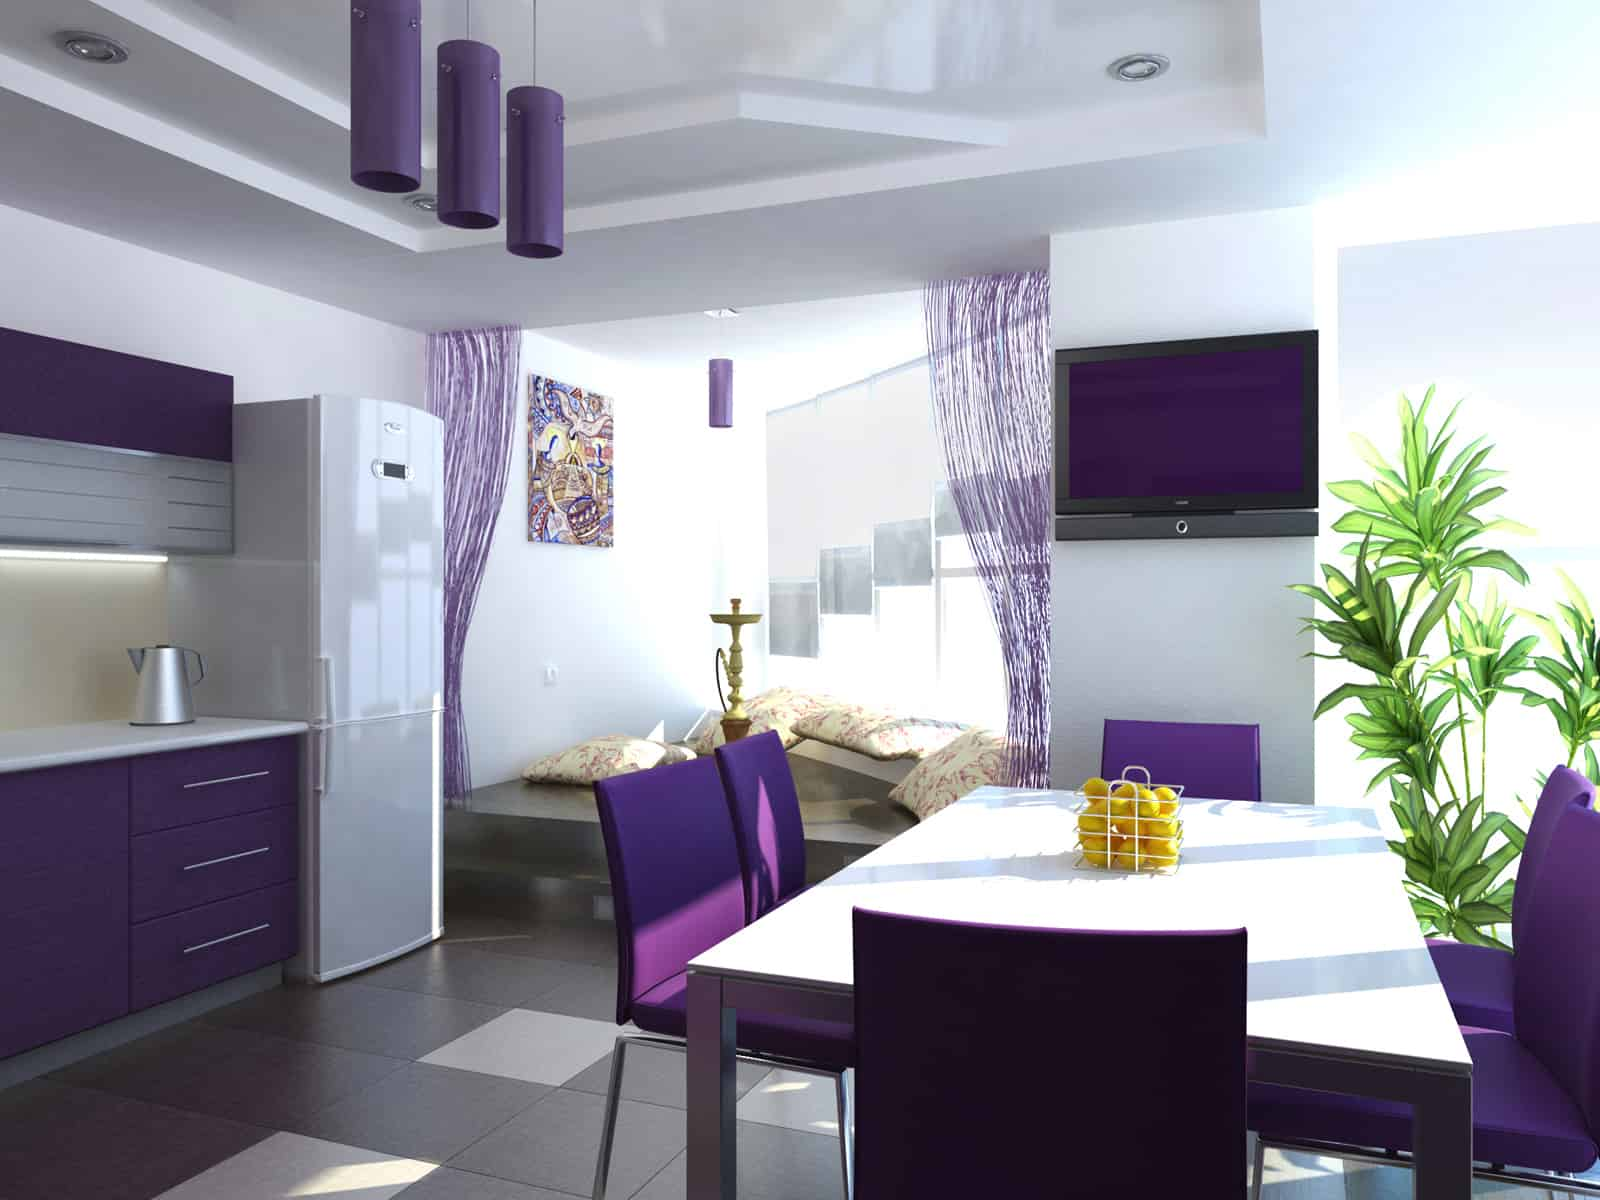 Interior design trends 2017 purple kitchen for Interior design ideas images